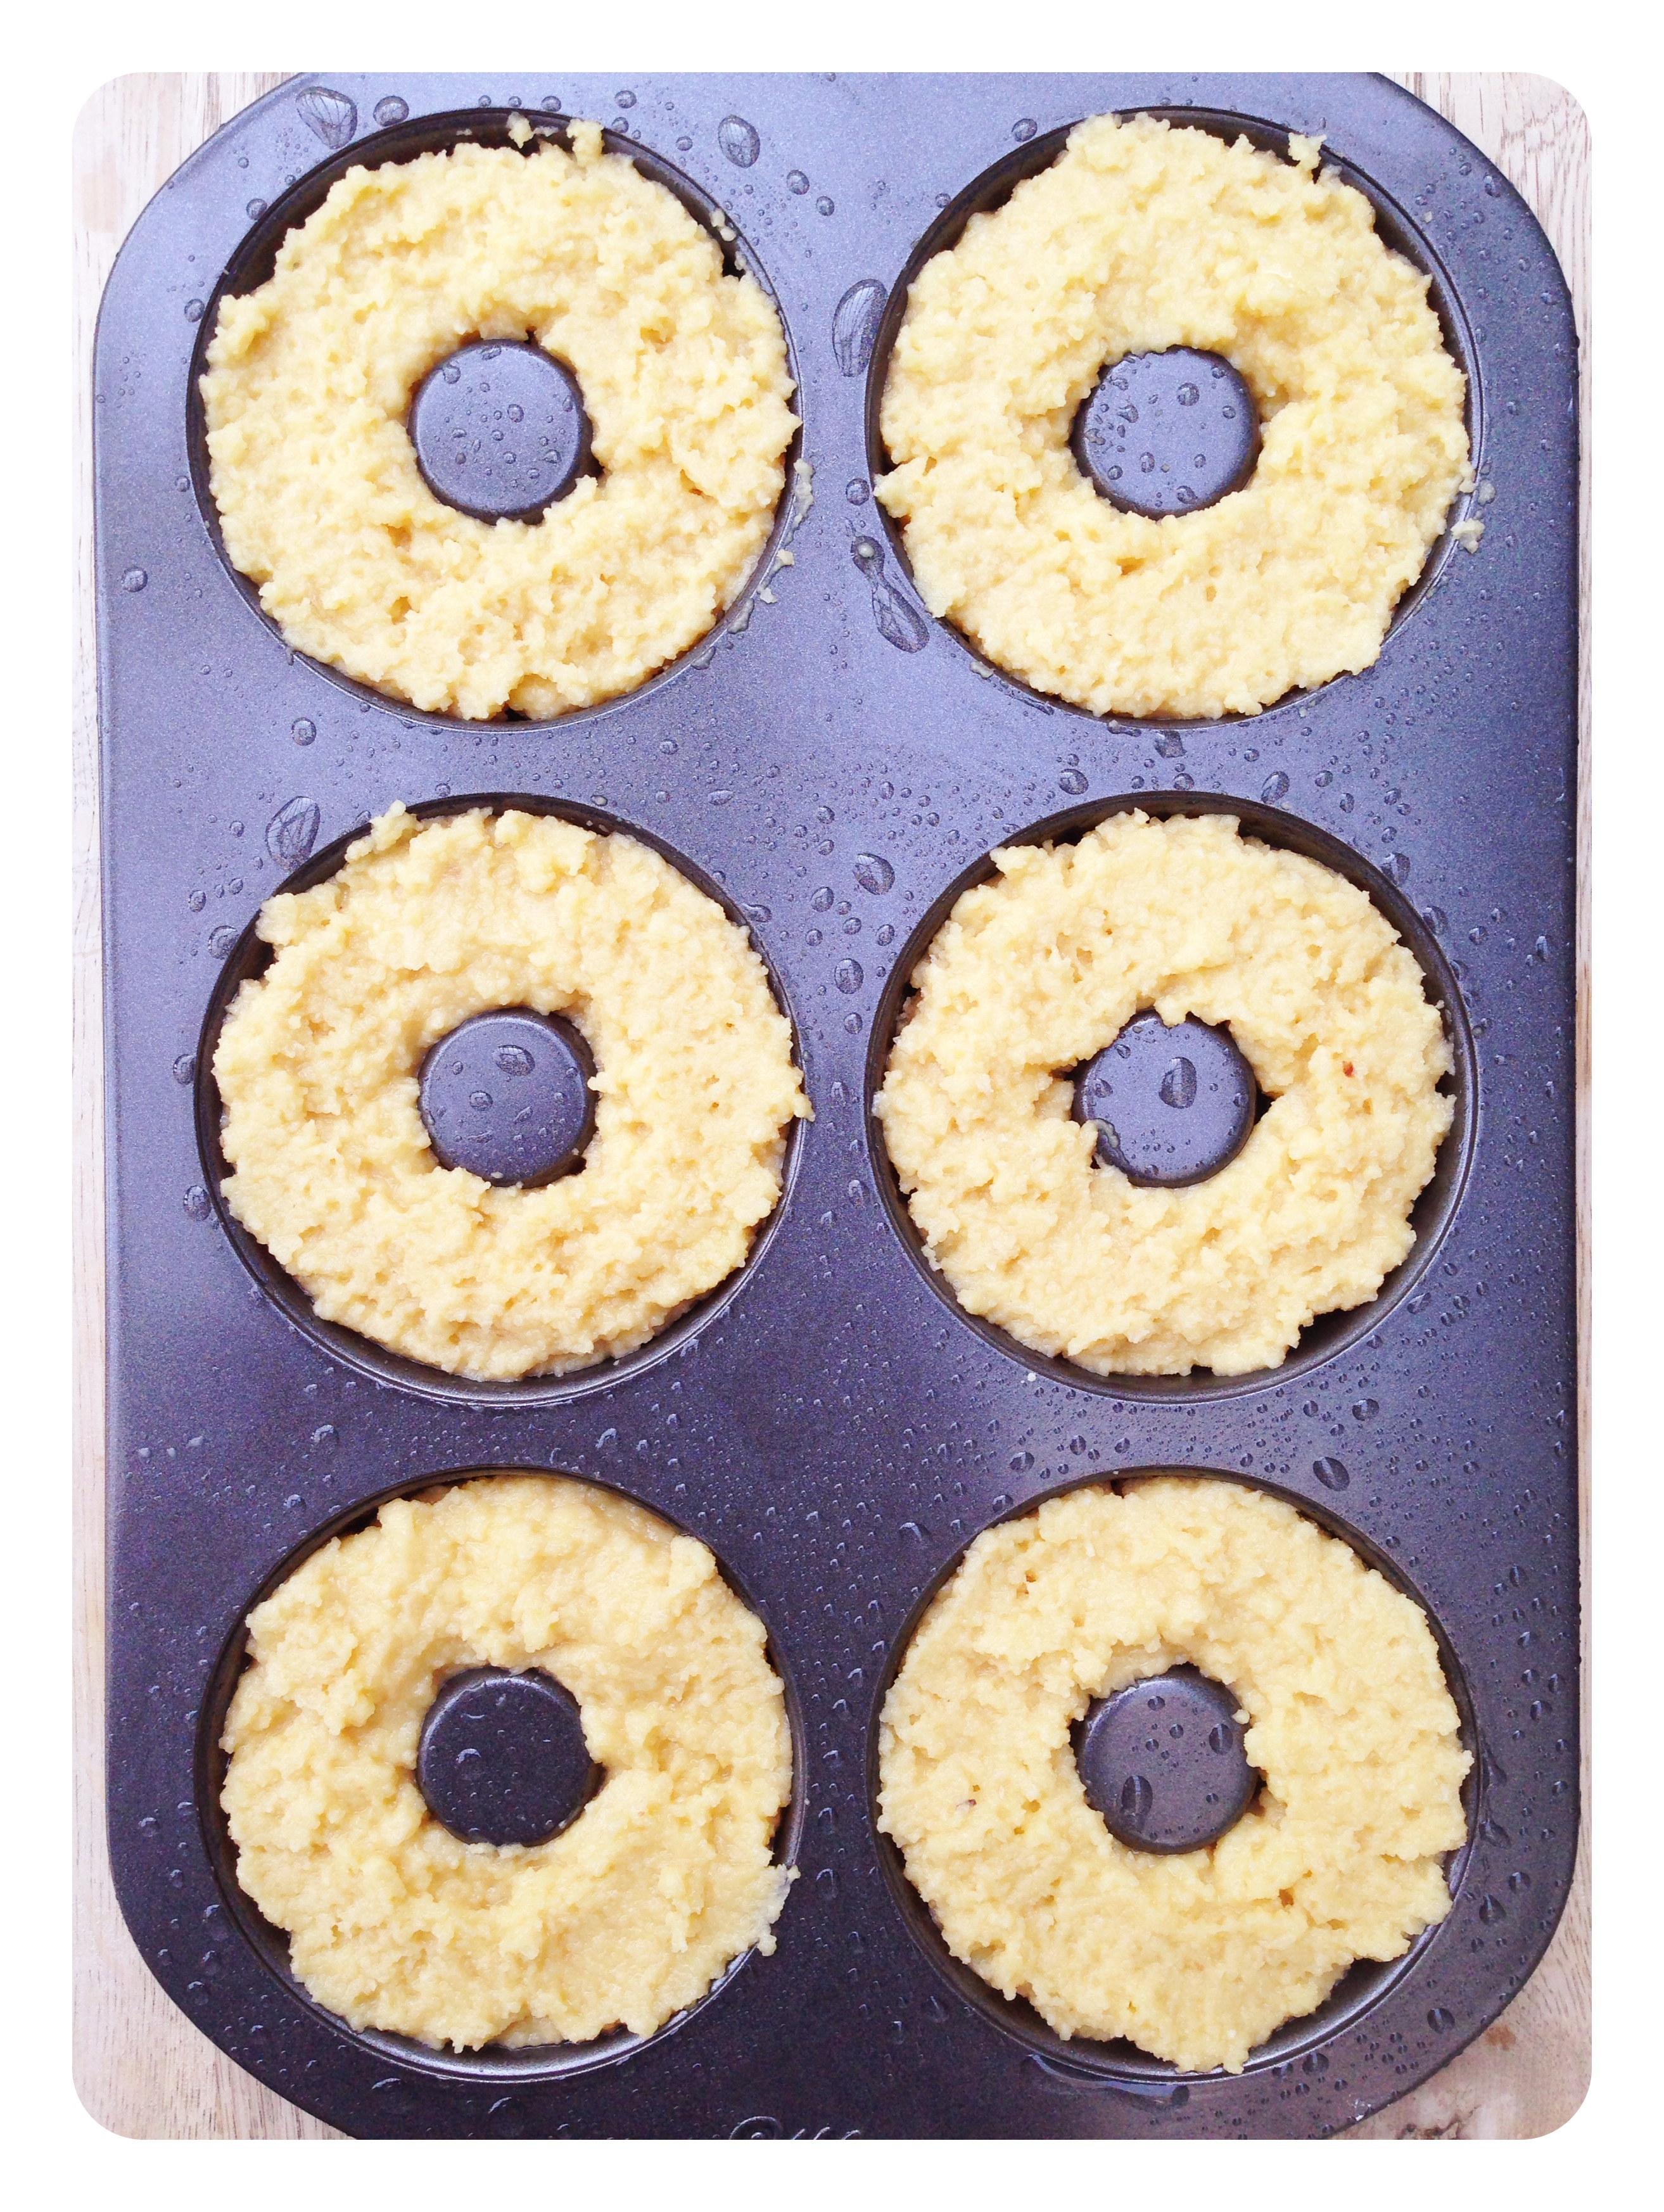 chia bagels gf v baked chia bagels gf v chia seed bagels by gfv rolls ...